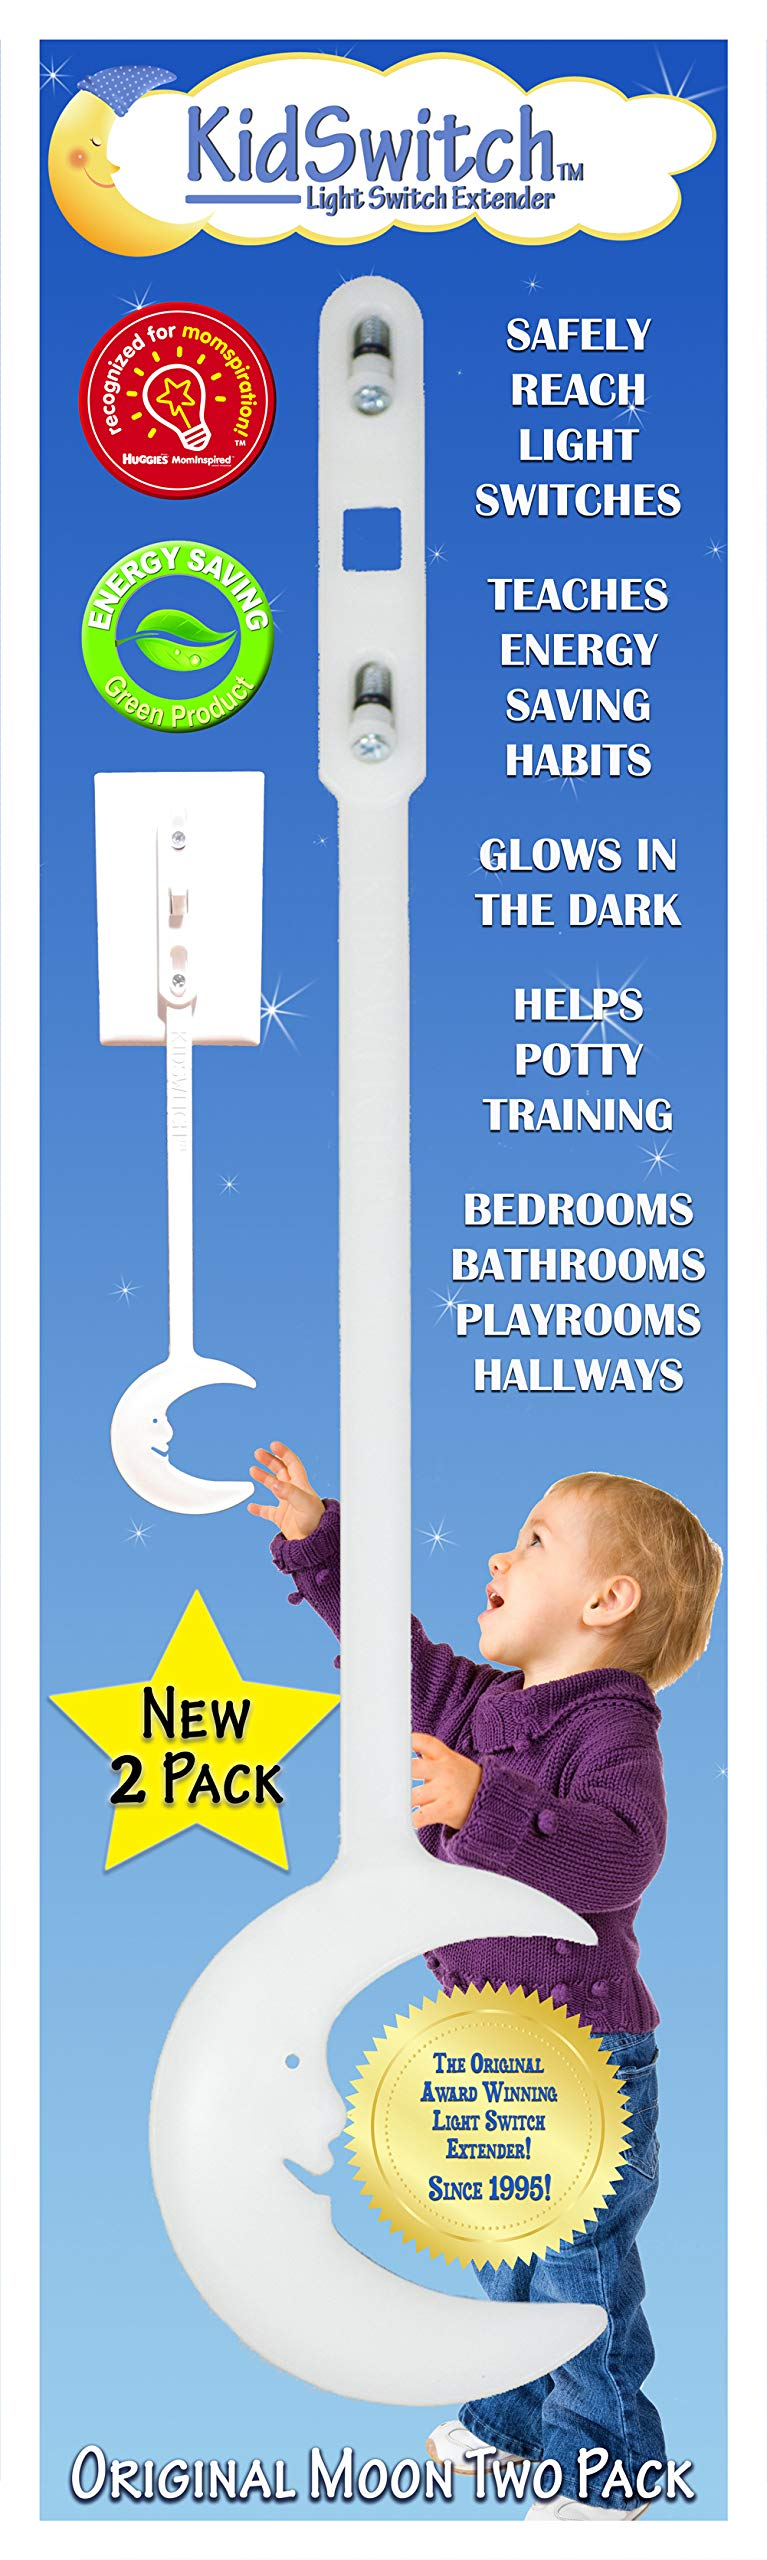 KidSwitch Award-Winning Light Switch Extender for Children & Toddlers - Original Style 2 Pack